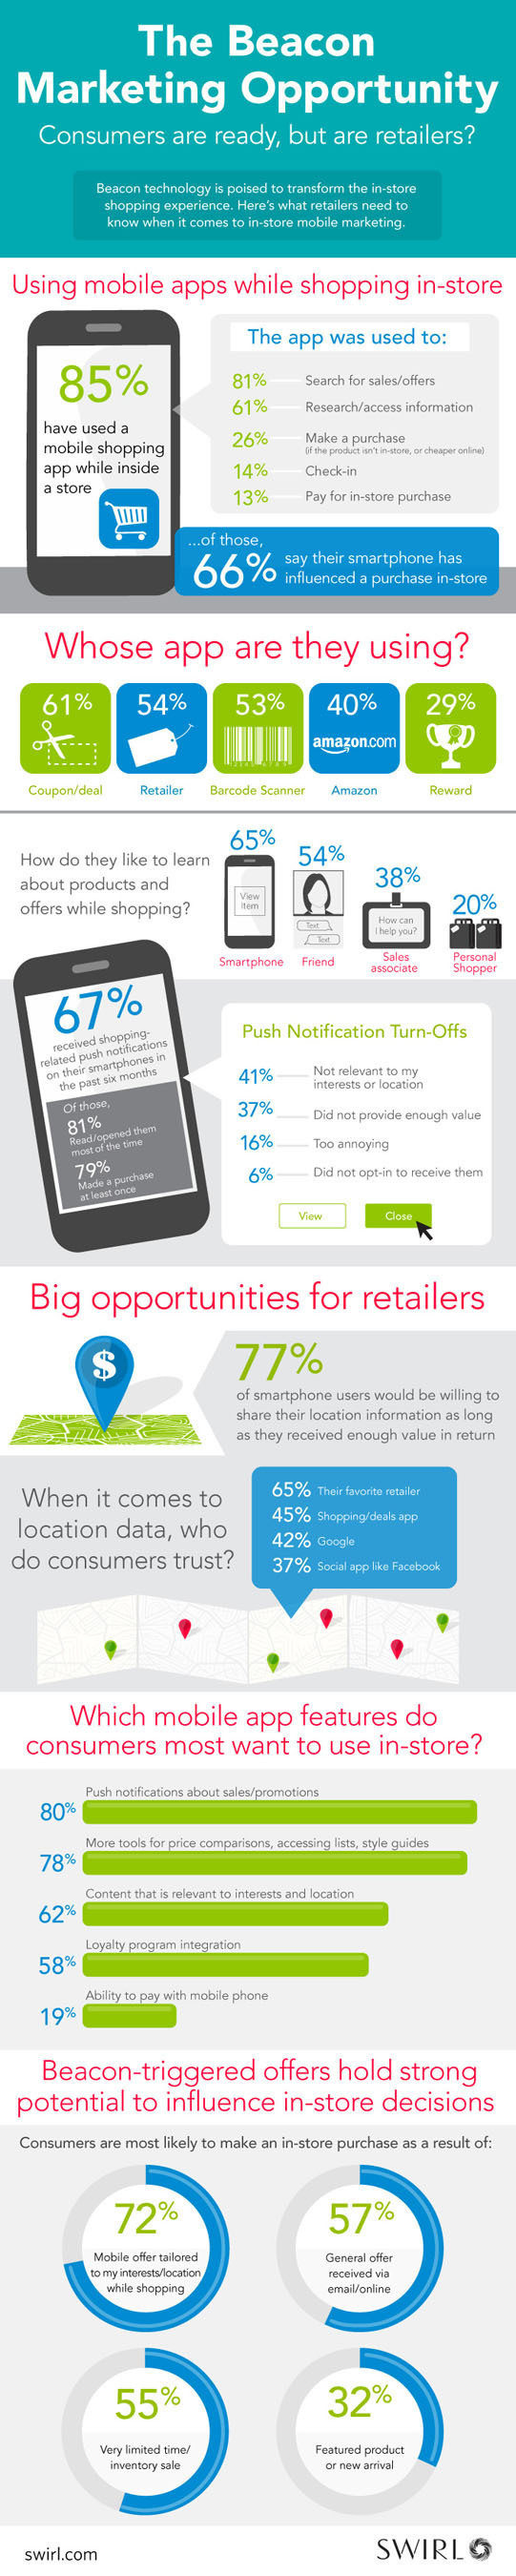 The Beacon Marketing Opportunity: Consumers are Ready, But are Retailers? (PRNewsFoto/Swirl Networks, Inc.) ...